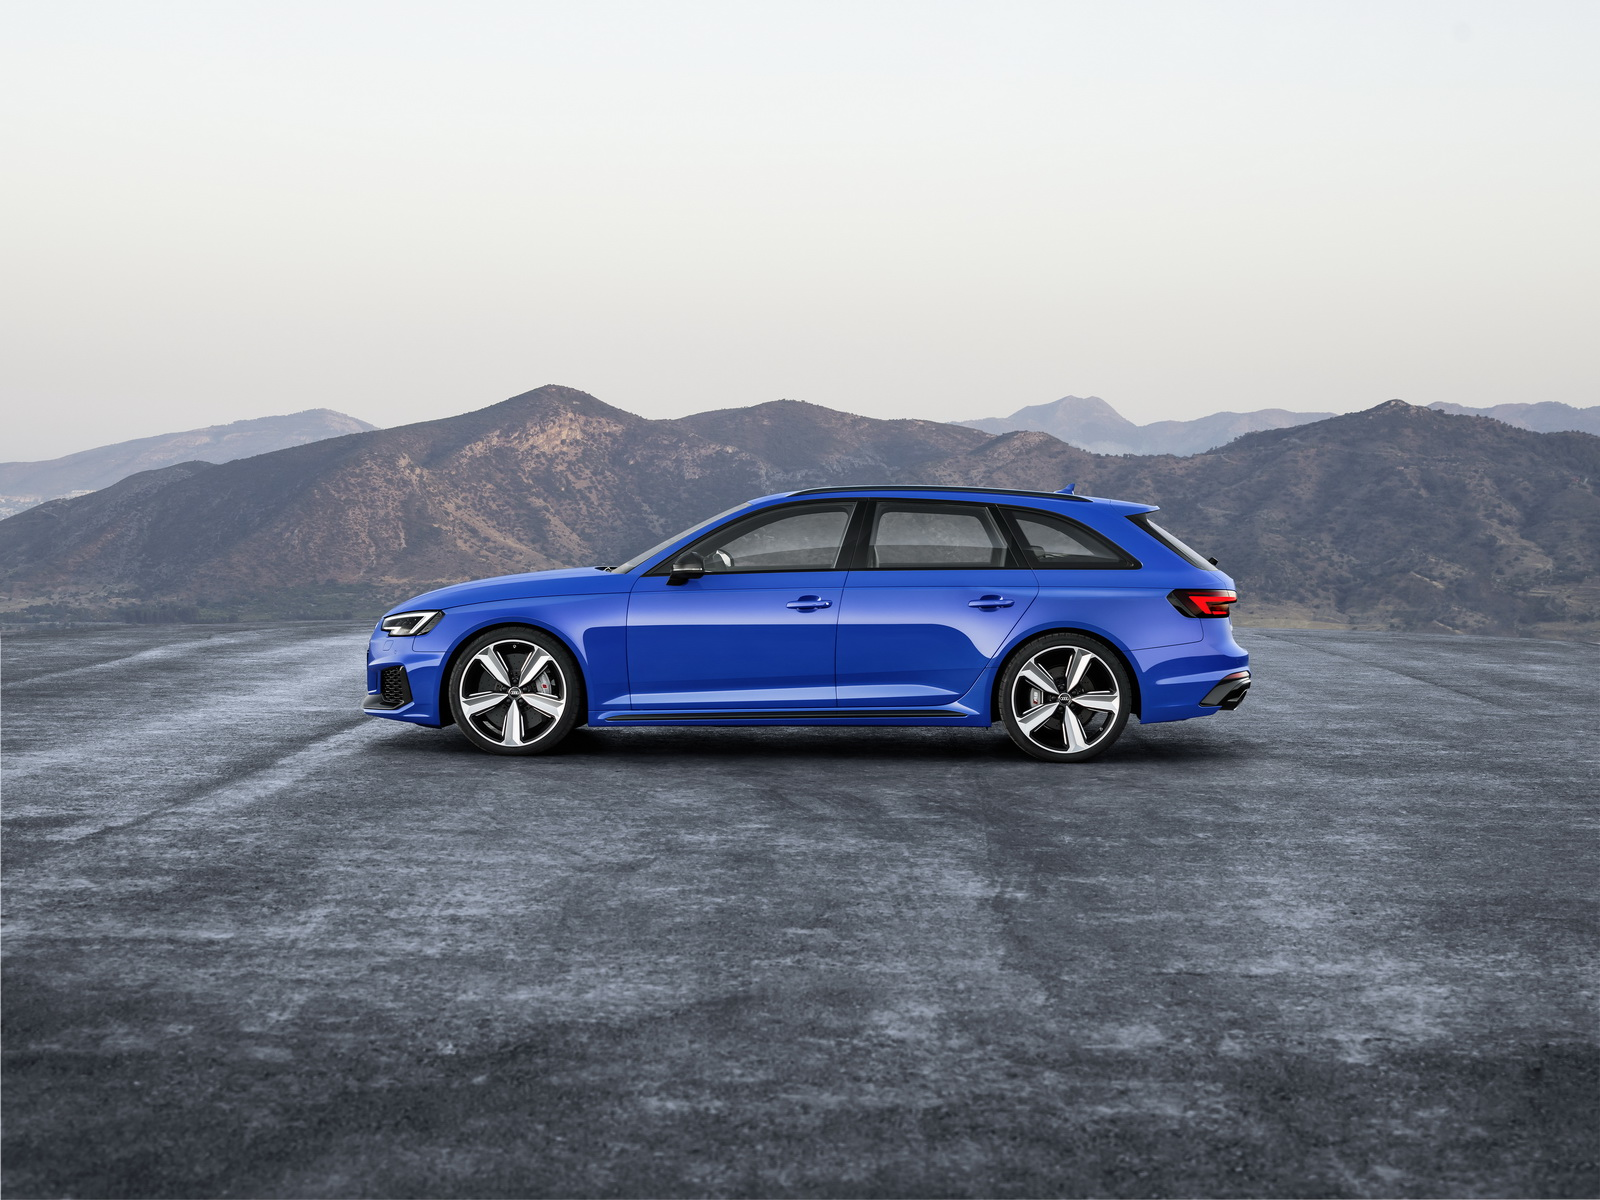 2018 Audi Rs4 Avant Priced In Germany Prepare To Pony Up Eur 79 800